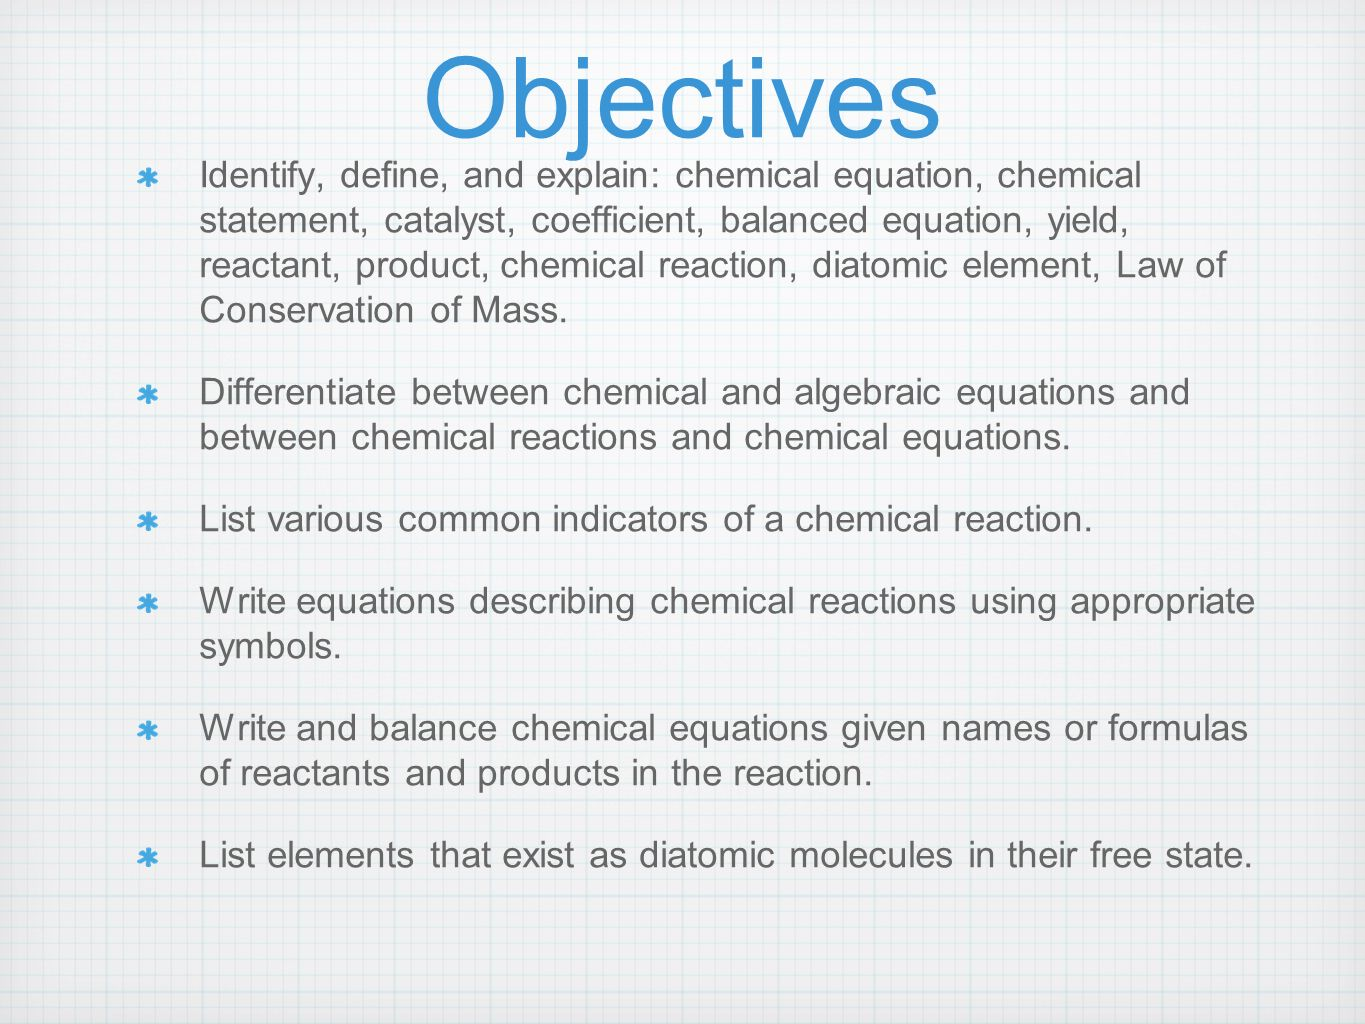 Objectives Identify, define, and explain: chemical equation, chemical statement, catalyst, coefficient, balanced equation, yield, reactant, product, chemical reaction, diatomic element, Law of Conservation of Mass.